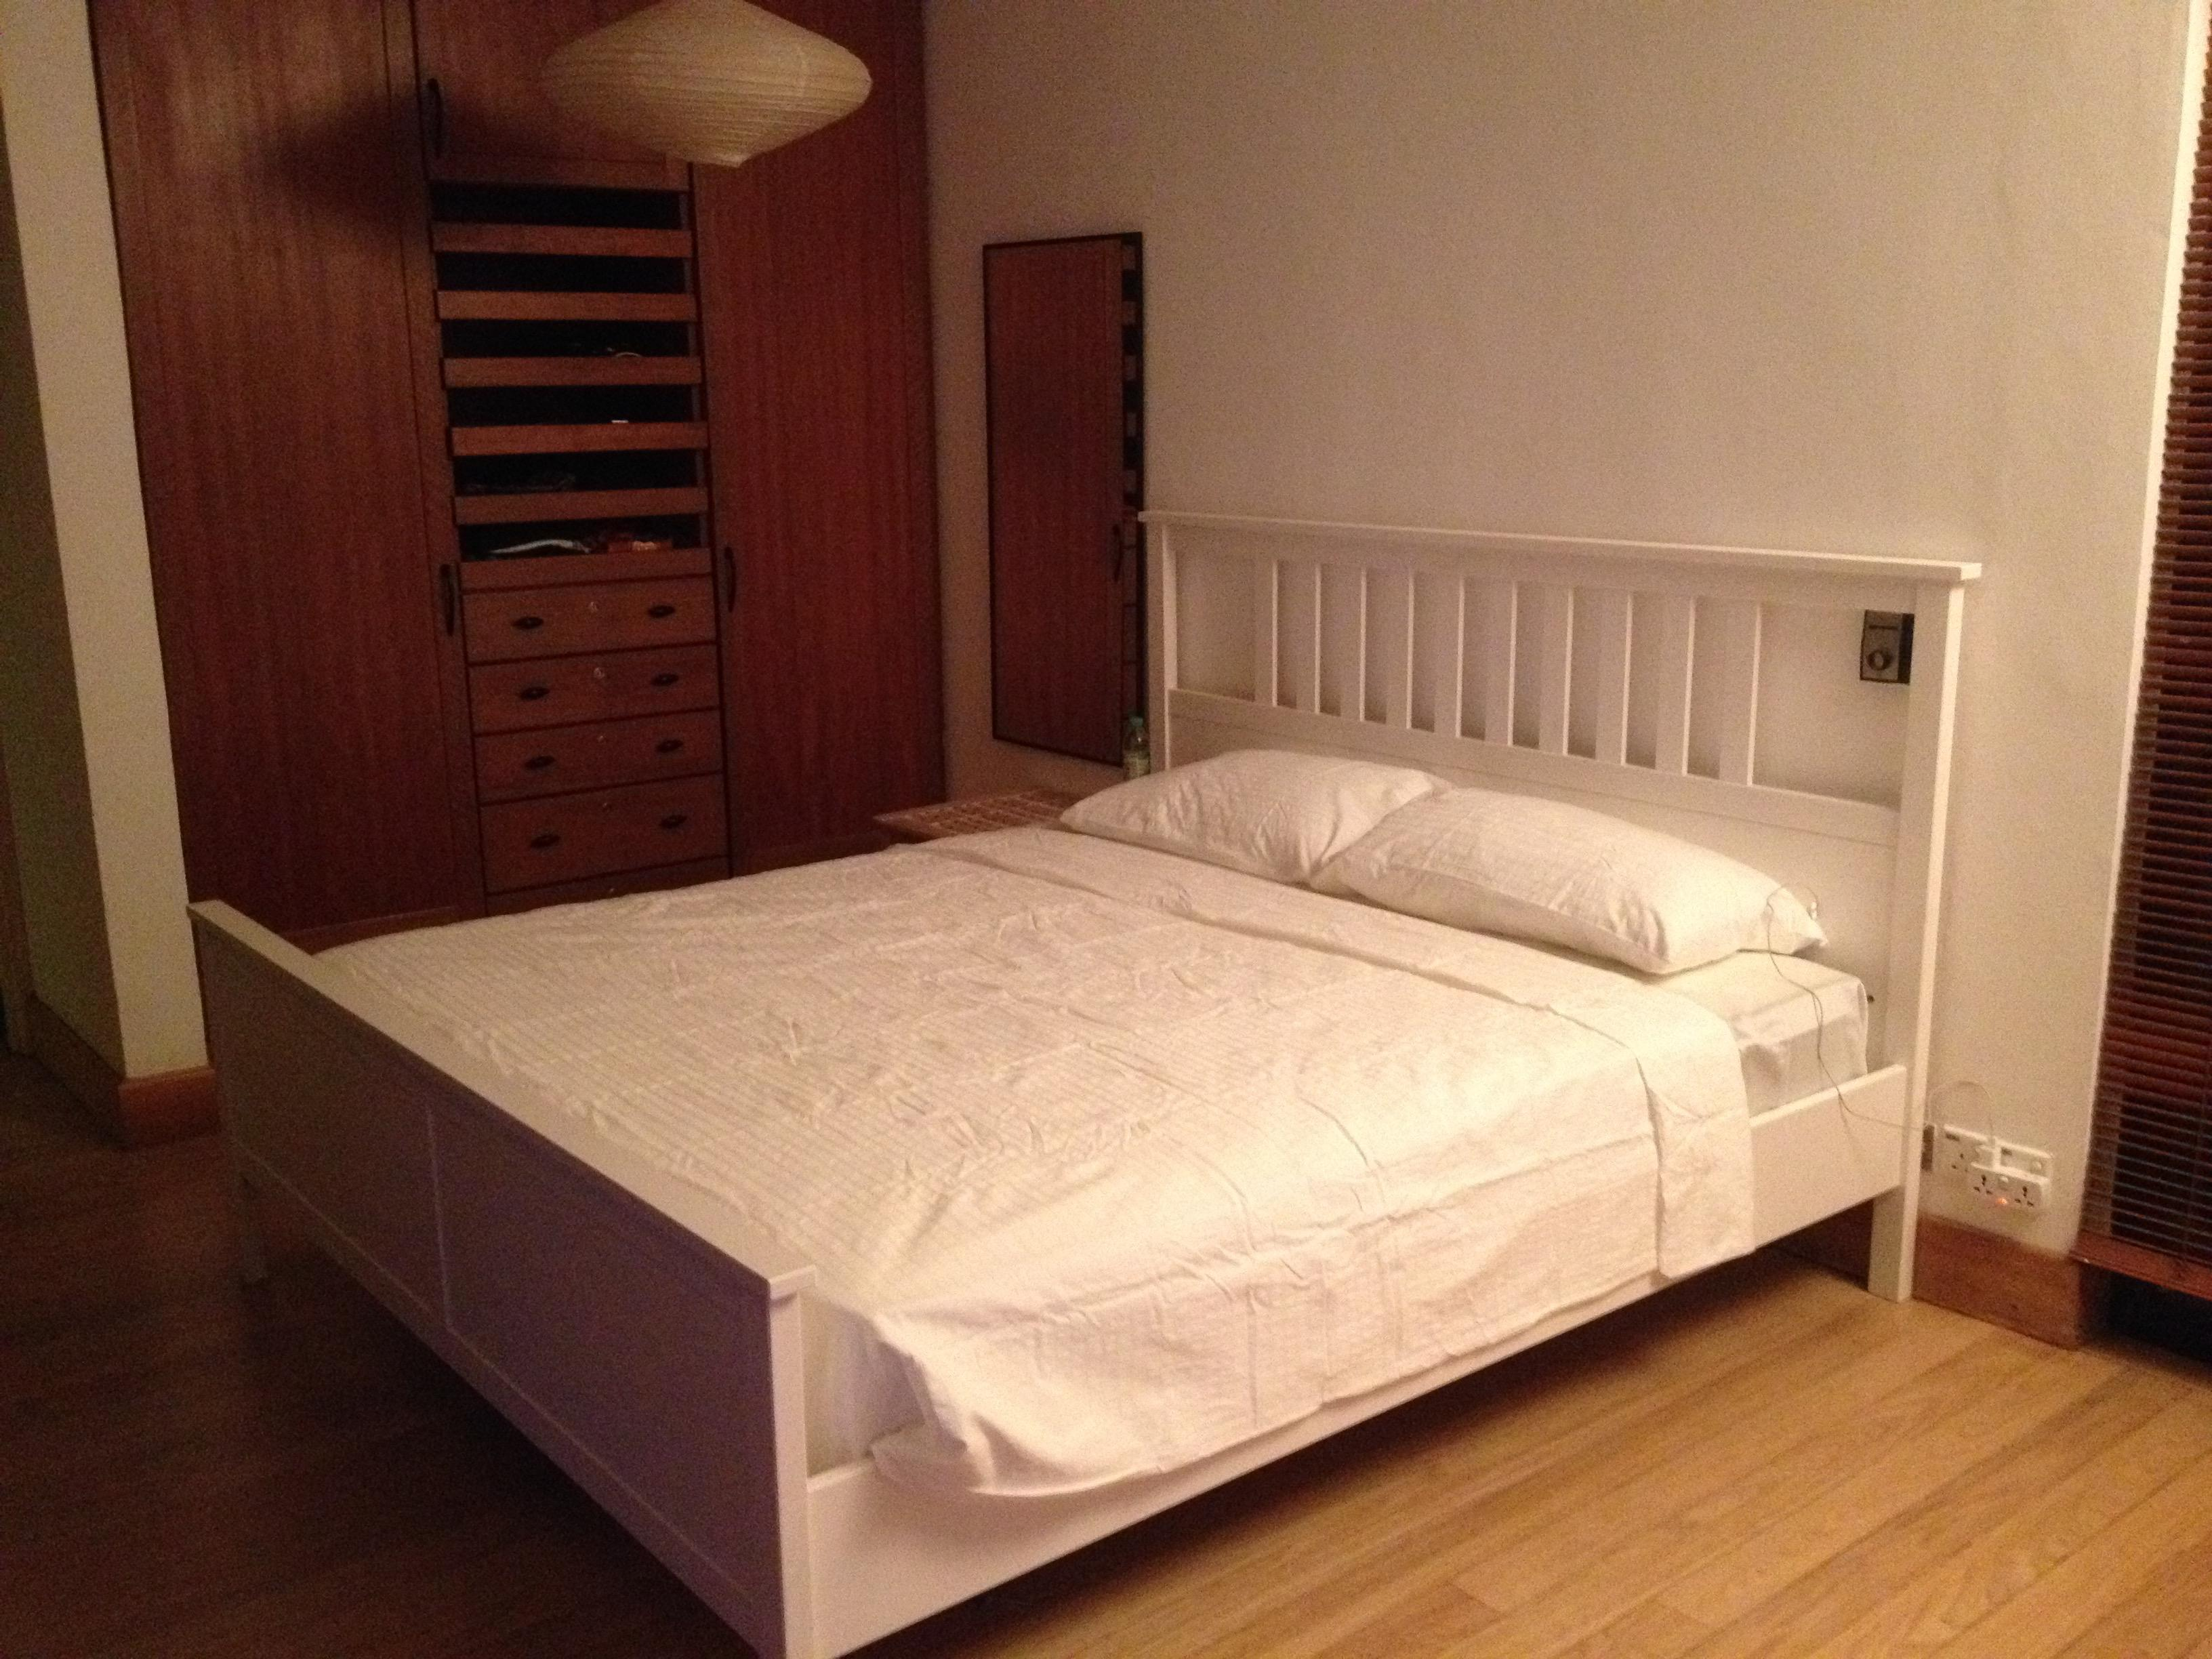 Bed Mattress Dining Table Chairs For Sale Secondhand My